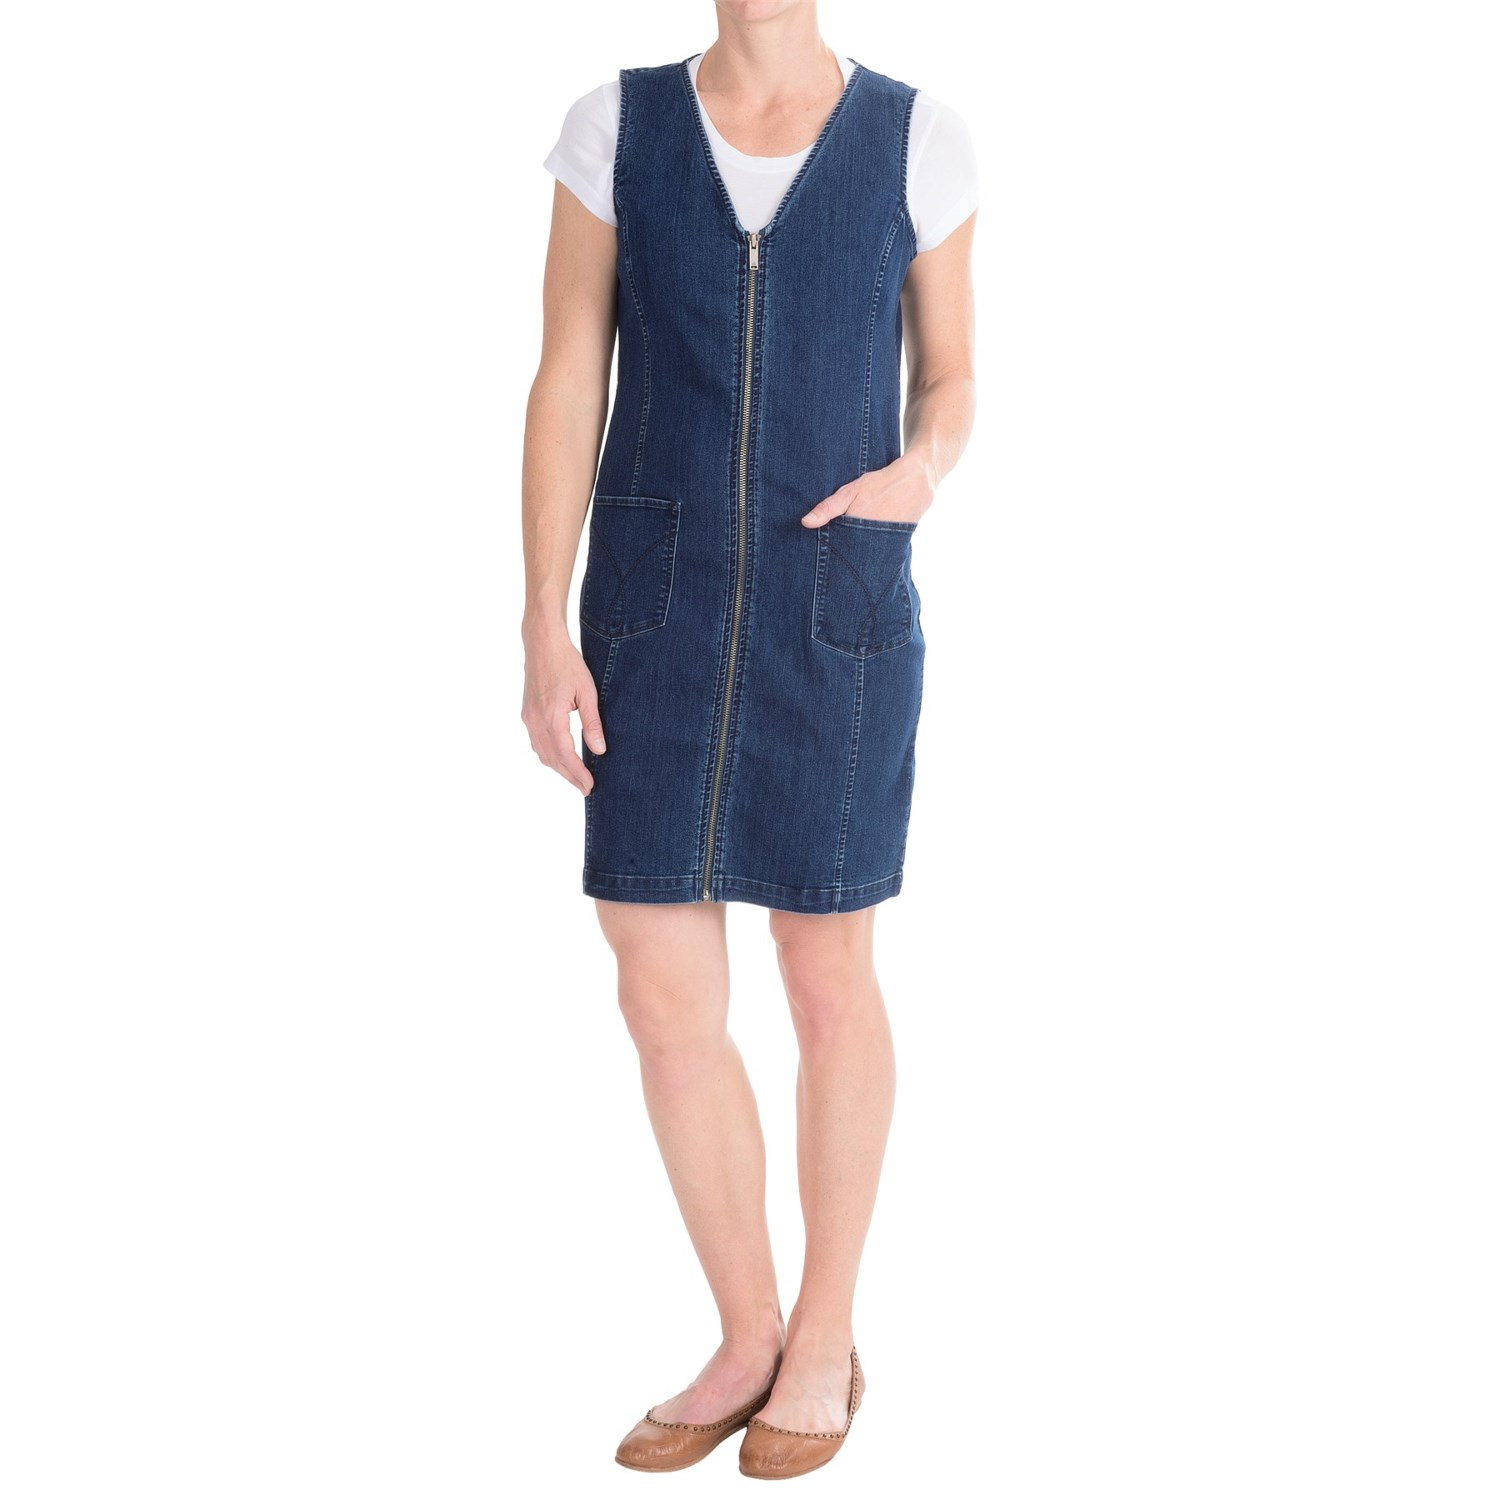 Awesome Blue Jean Dresses For WomenBuy Cheap Blue Jean Dresses For Women